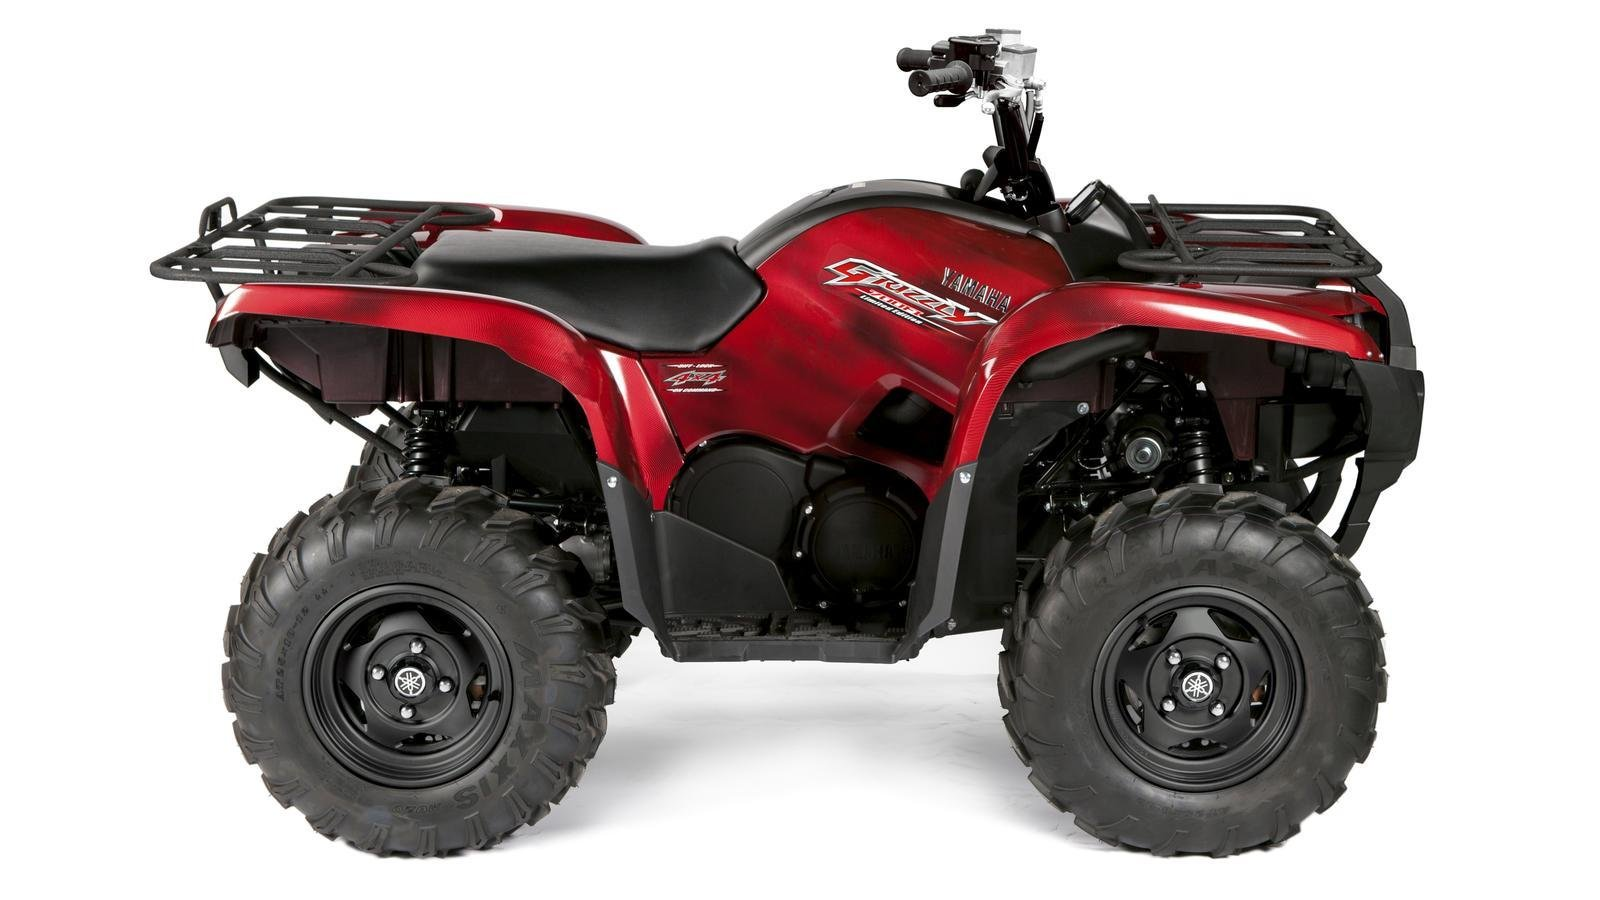 2013 yamaha grizzly 700 eps se picture 460753 motorcycle review top speed. Black Bedroom Furniture Sets. Home Design Ideas